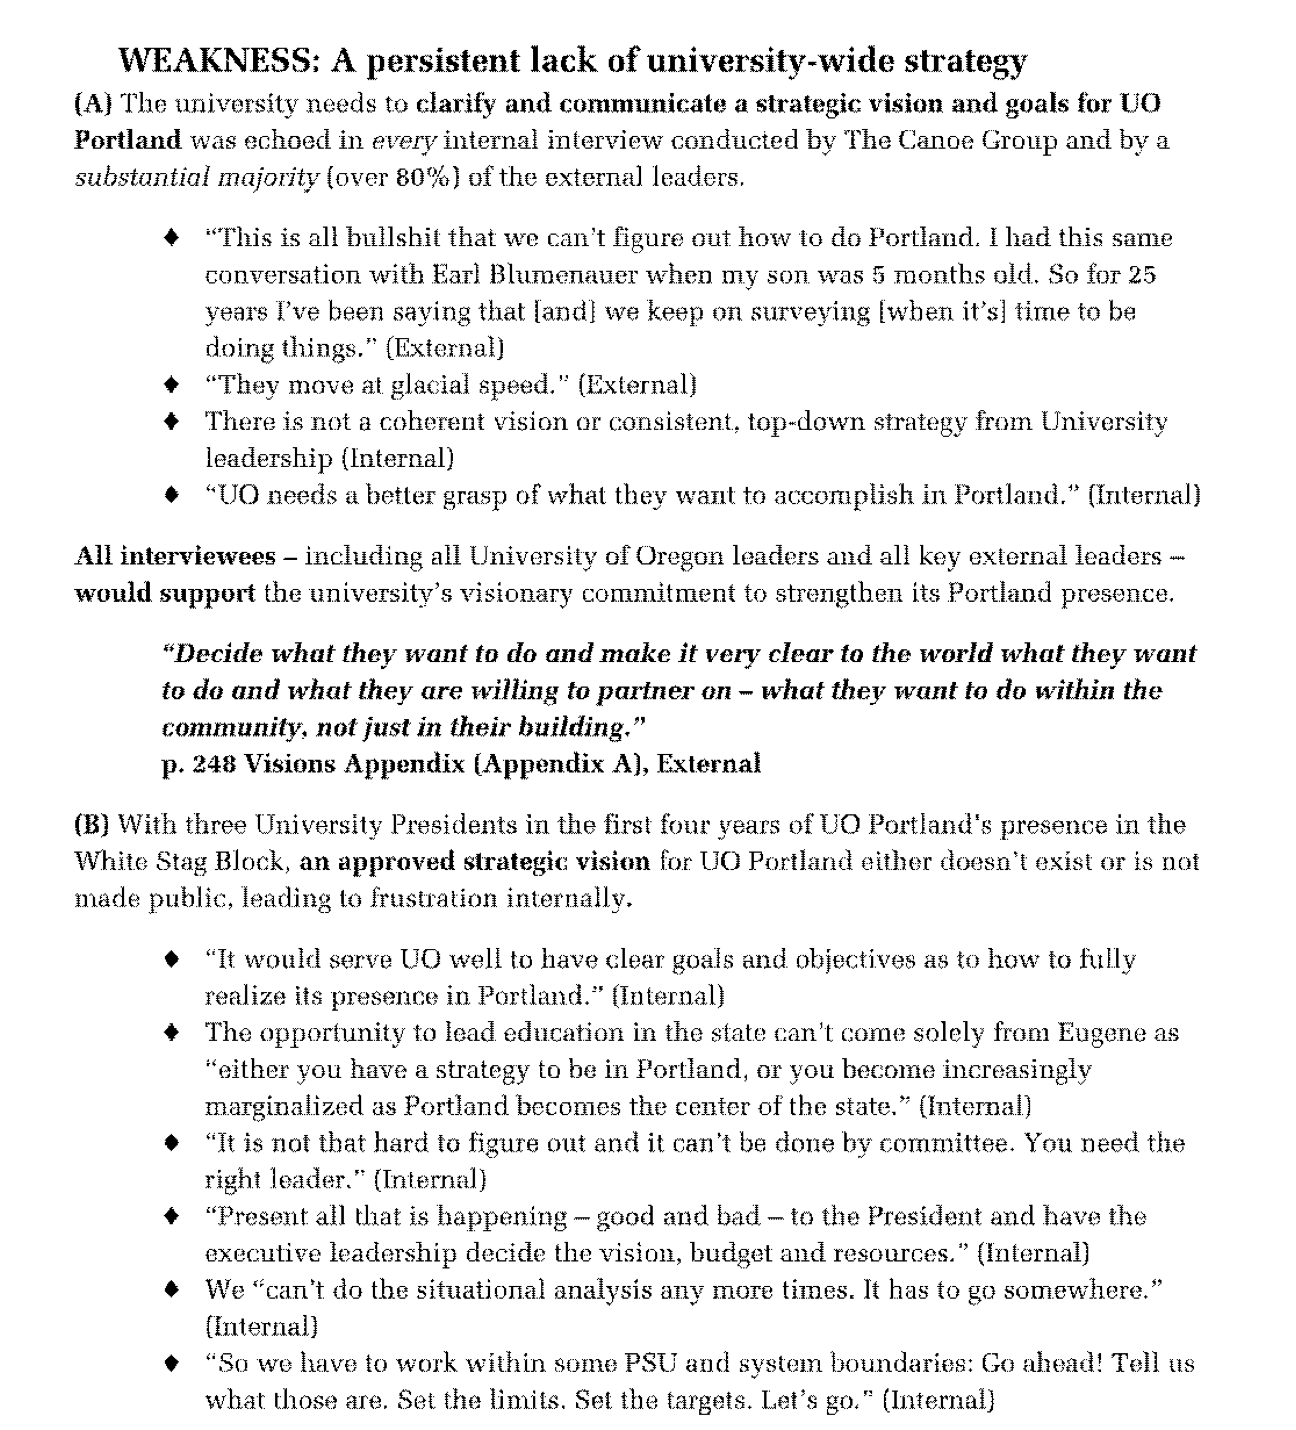 does uo have a strategic plan for portland yet uo matters presumably the good stuff from the pwg report starts on page 231 but uo redacted it and the next few pages